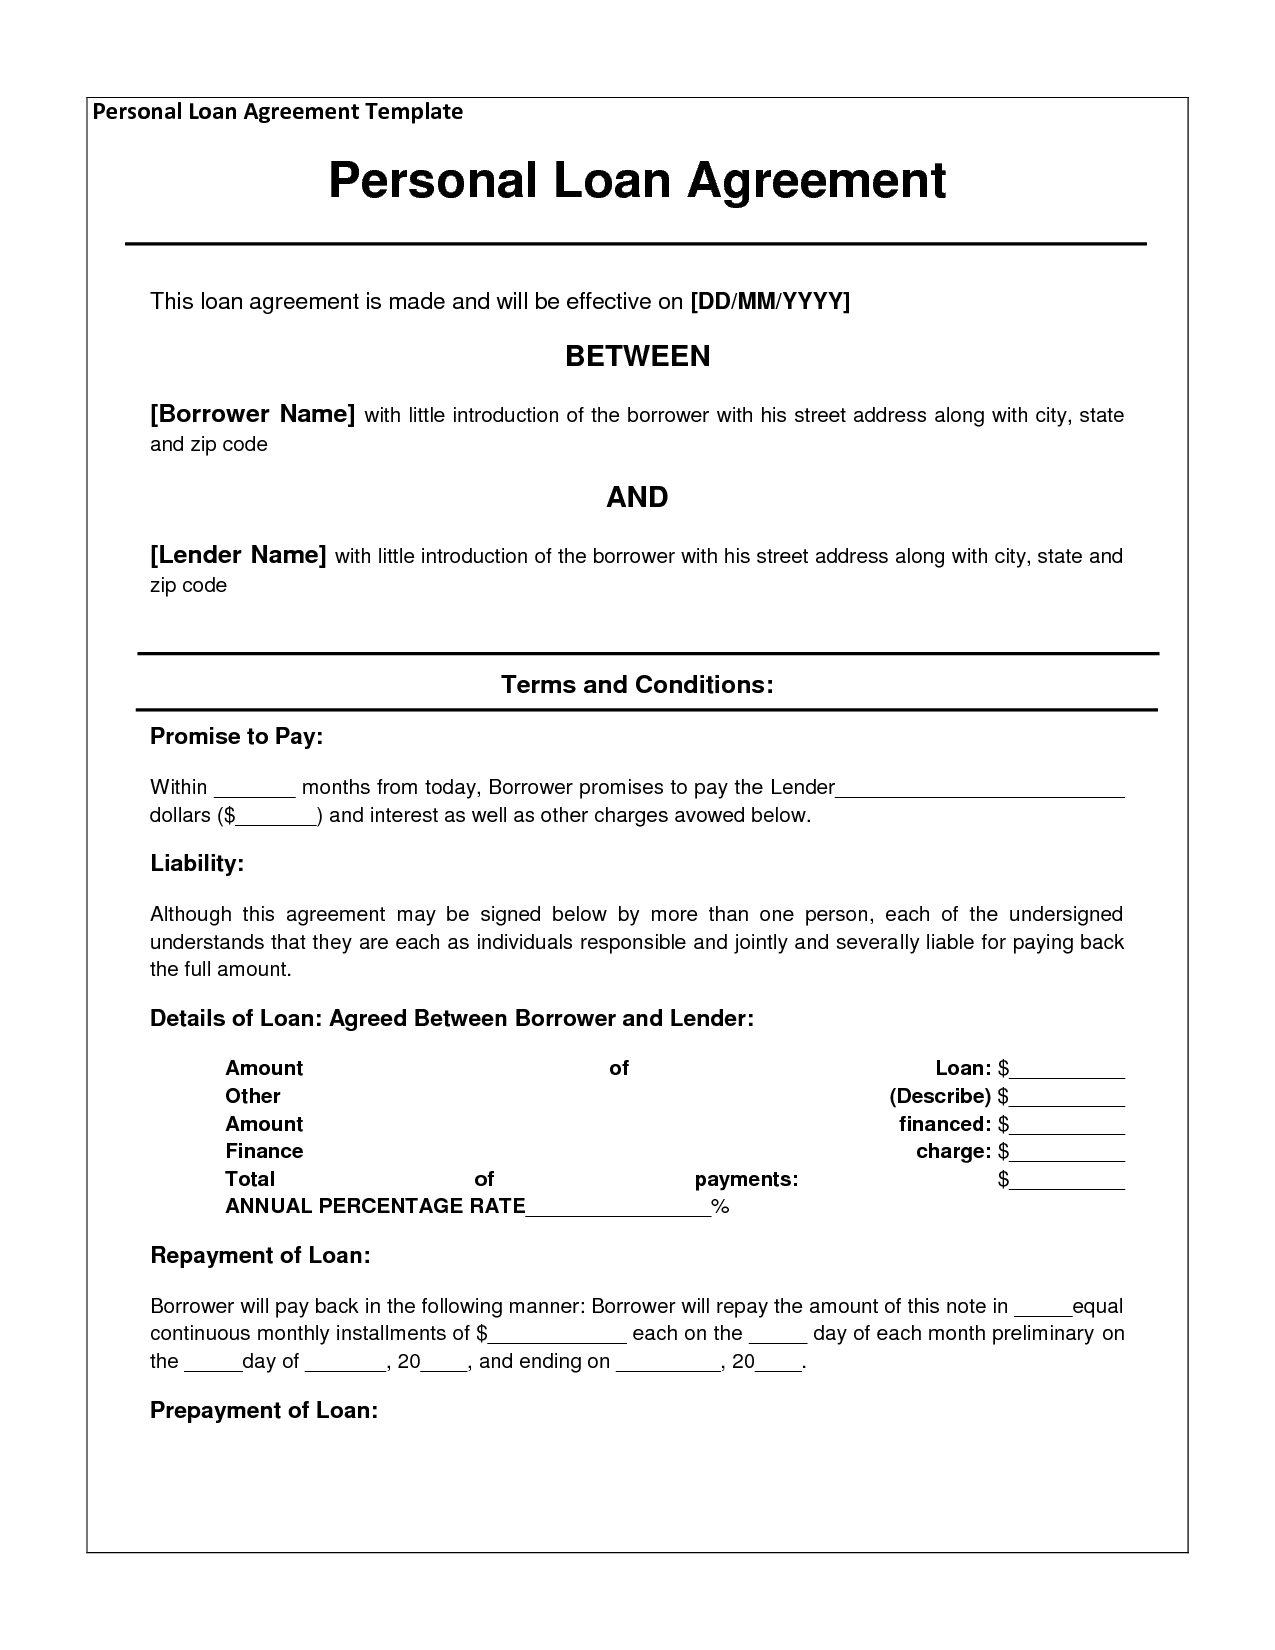 Free personal loan agreement form template - $1000 Approved in 2 ... - private loan agreement ...